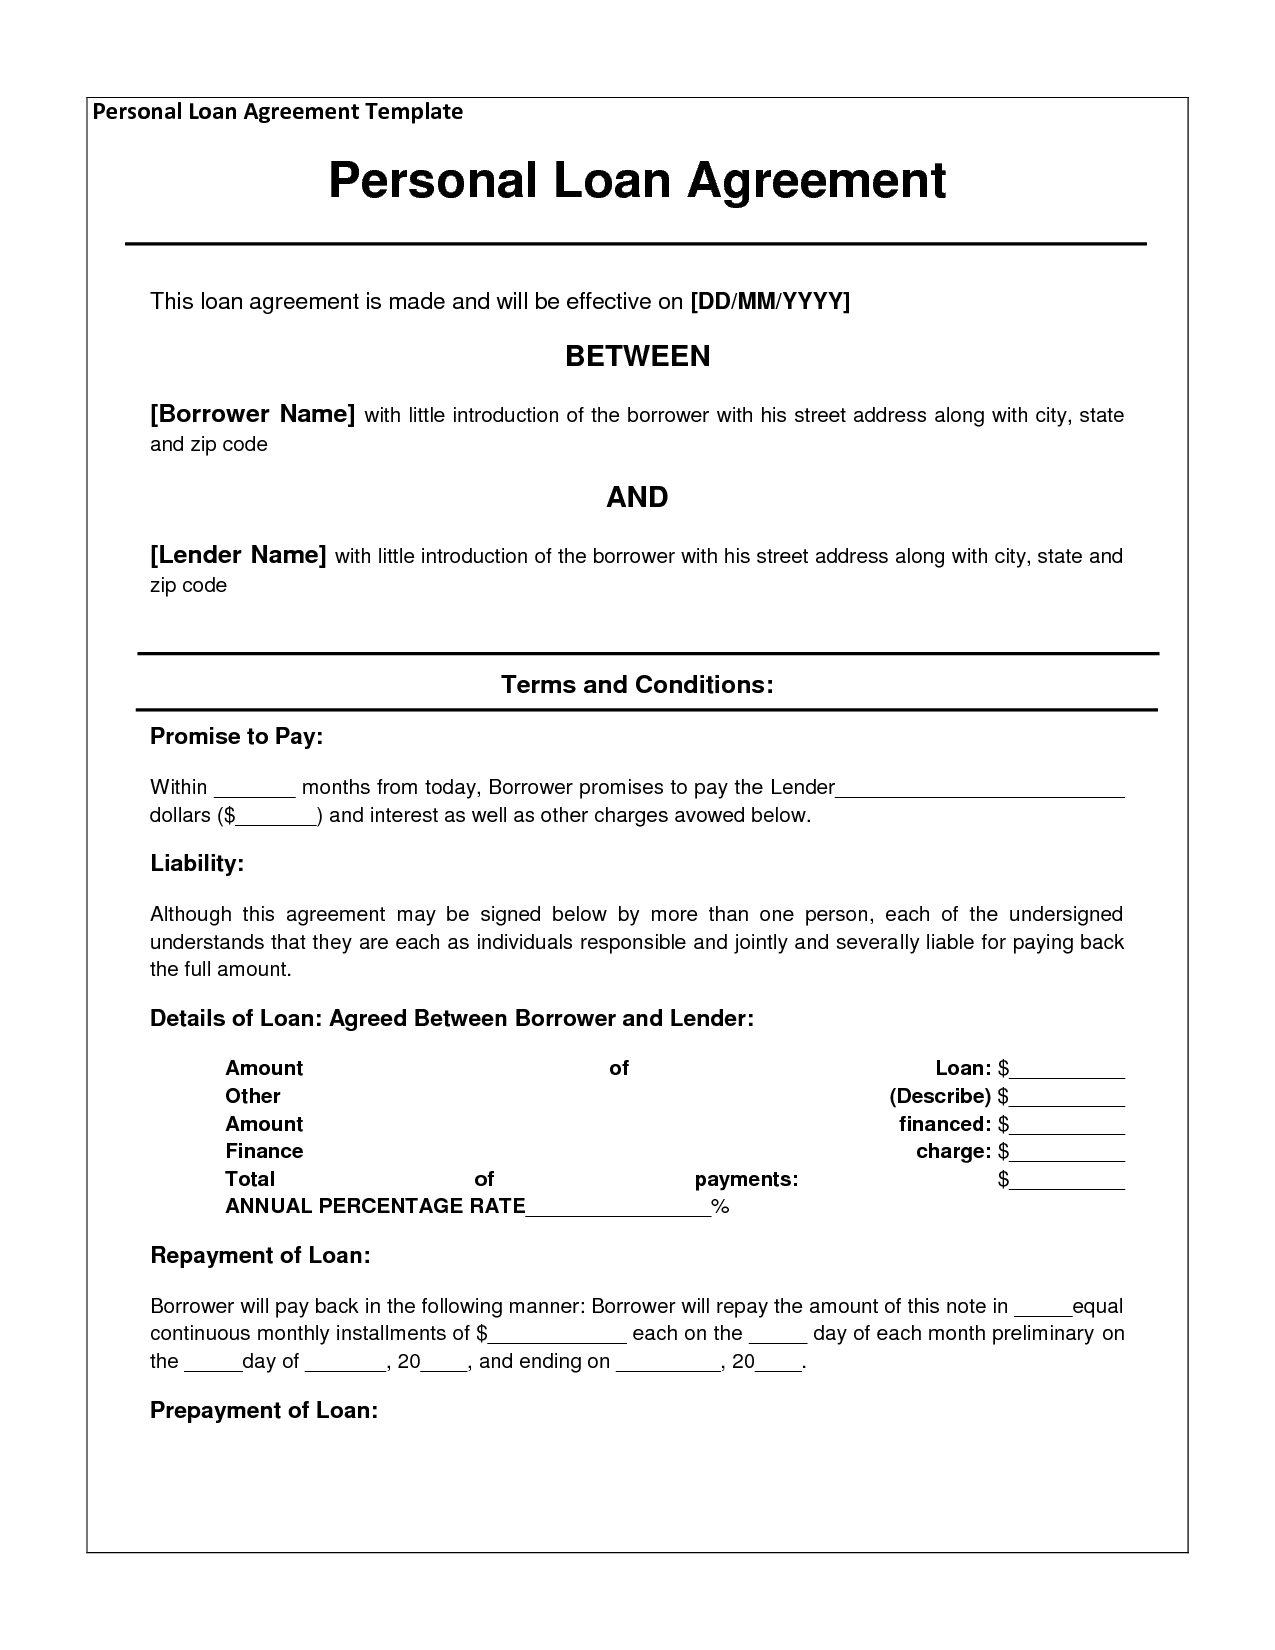 Free personal loan agreement form template - $1000 Approved in 2 ... - private loan agreement ...